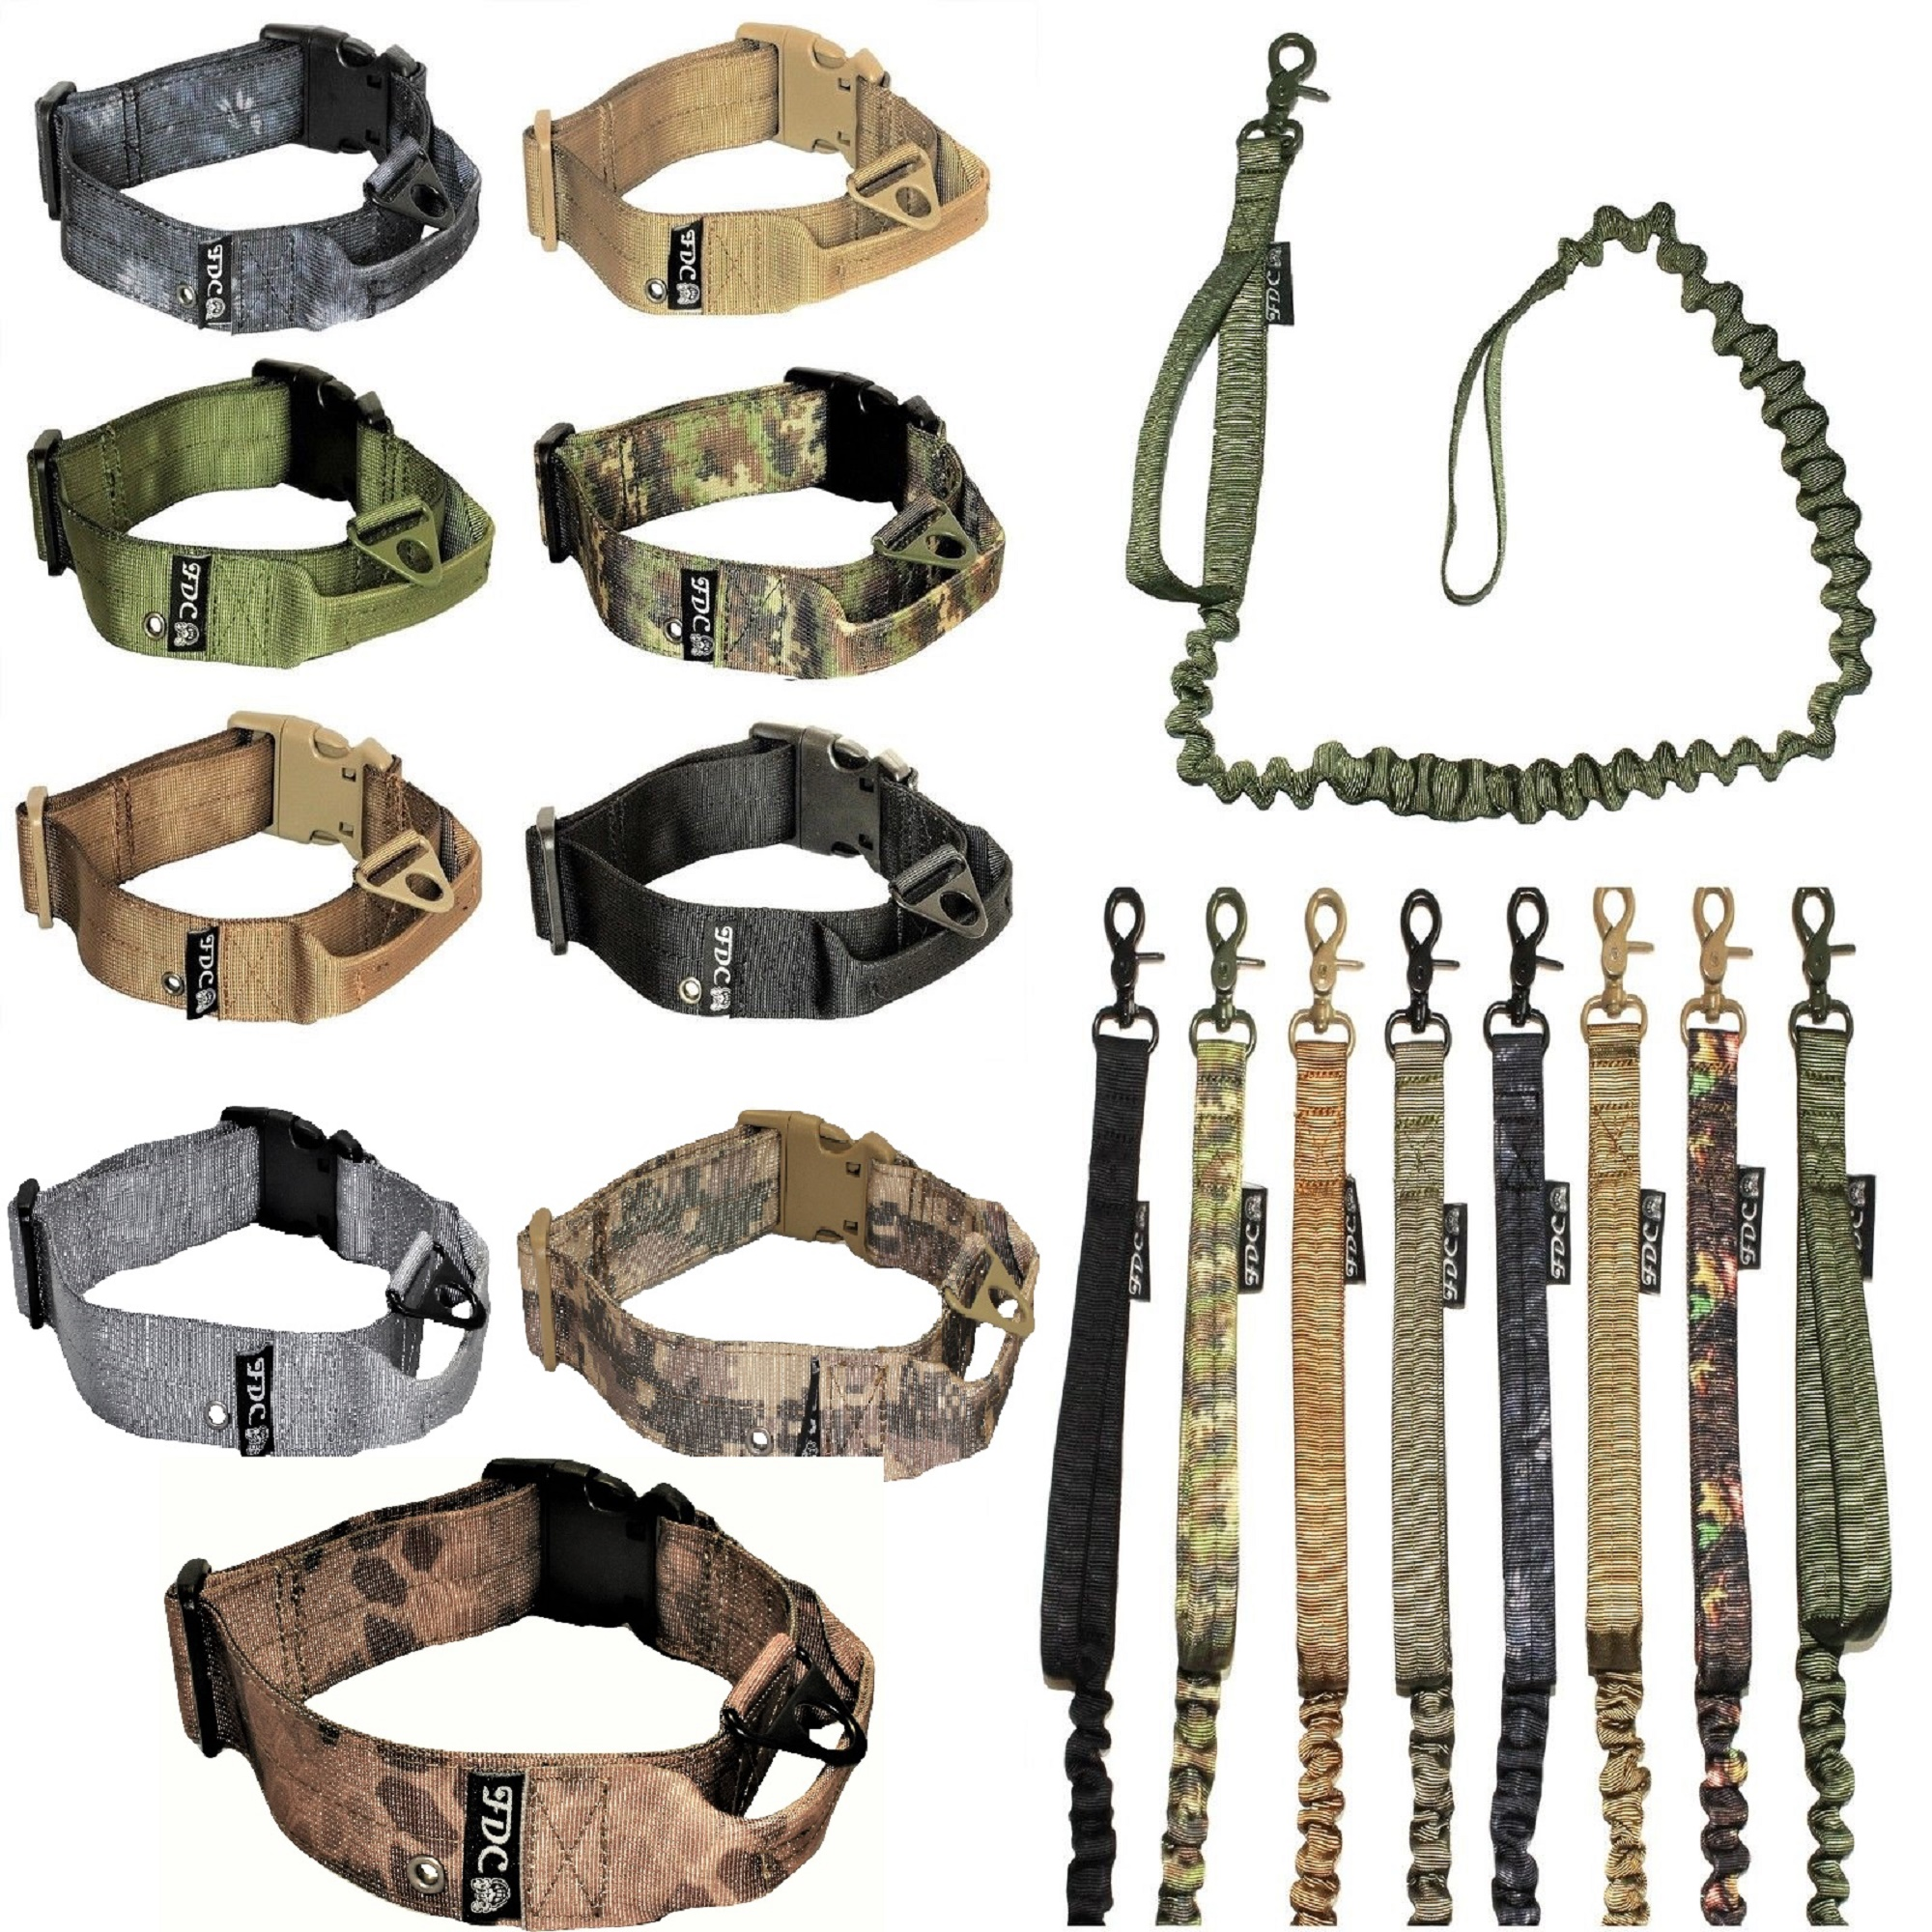 "SET of Tactical COLLAR and LEASH Dog Military Army HEAVY DUTY Traning with HANDLE Width 1.5in Plastic Buckle  M: Neck 12"" - 14"